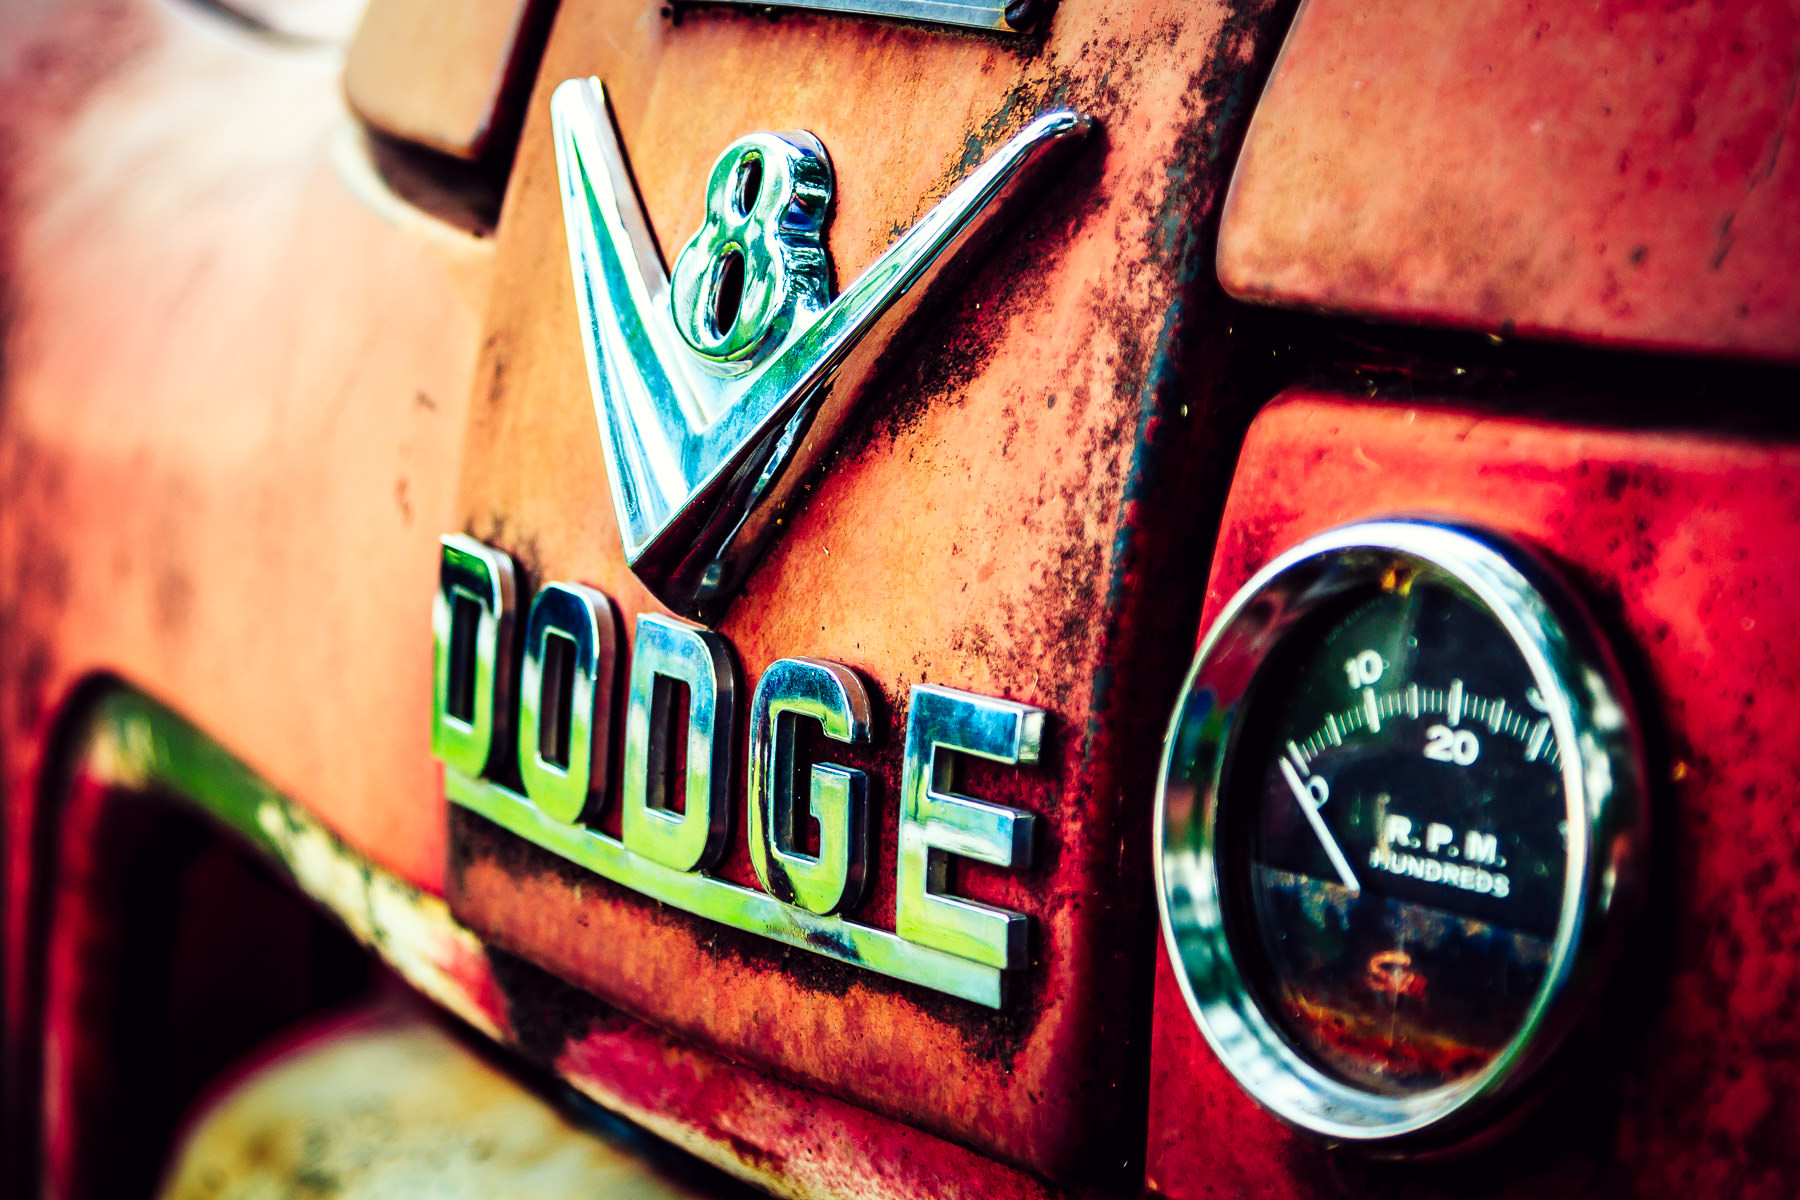 Detail from an old Dodge firetruck, abandoned to rust in Downtown Grapevine, Texas.